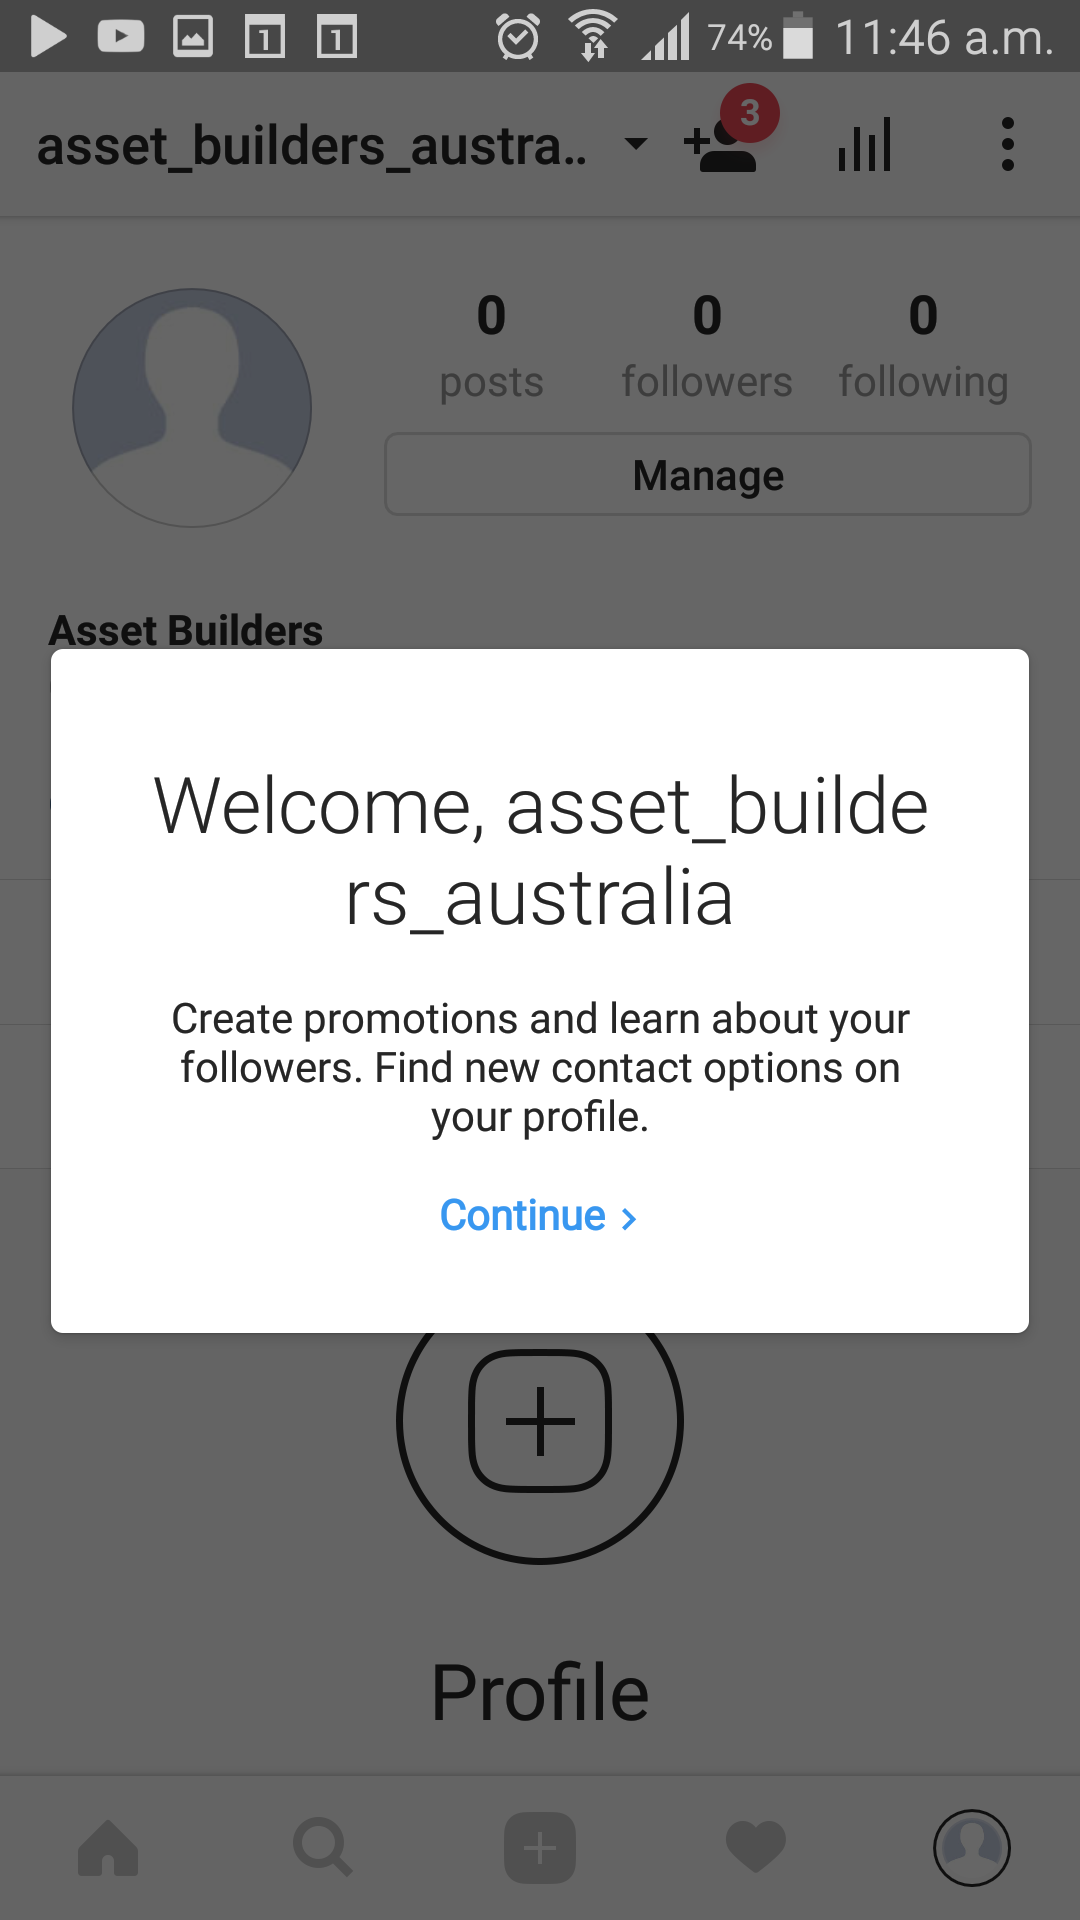 Step 8 - Done - Congratulations, you have completed setting up your Instagram Business Profile.This business profile can be accessed by anyone who knows the email and password for the account.